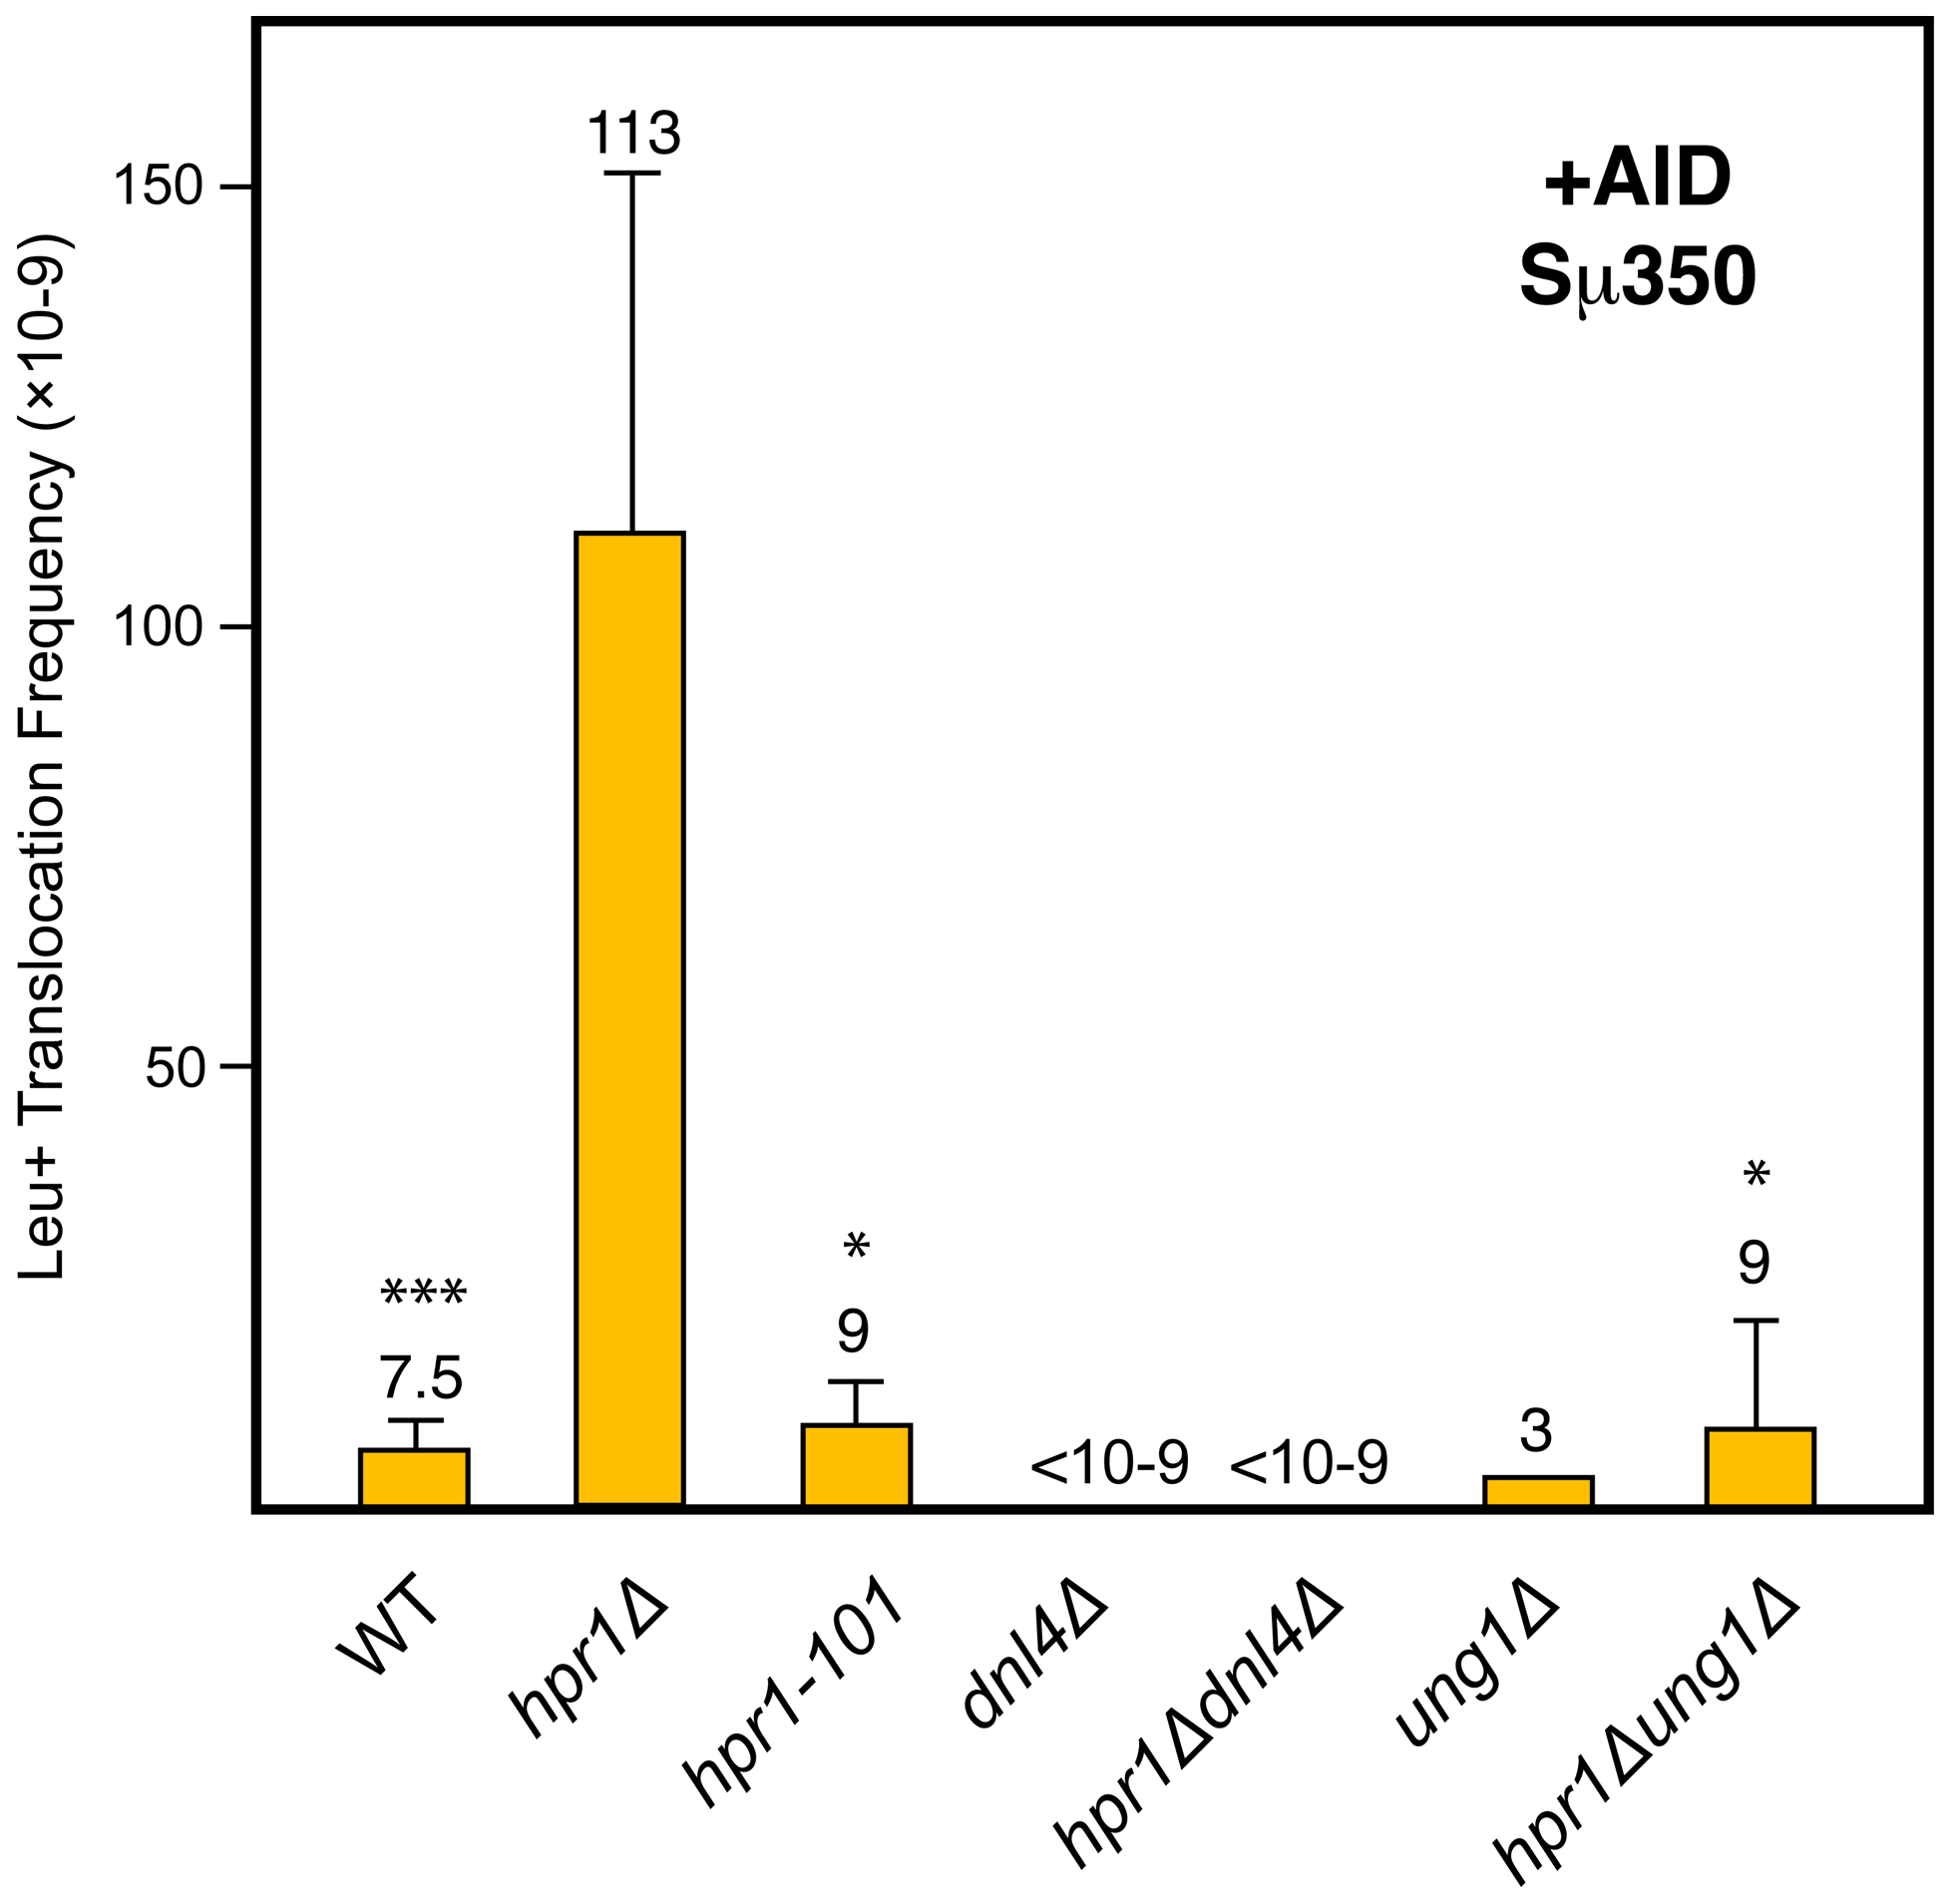 Analysis of Leu+ translocations in mutant strains overexpressing AID.